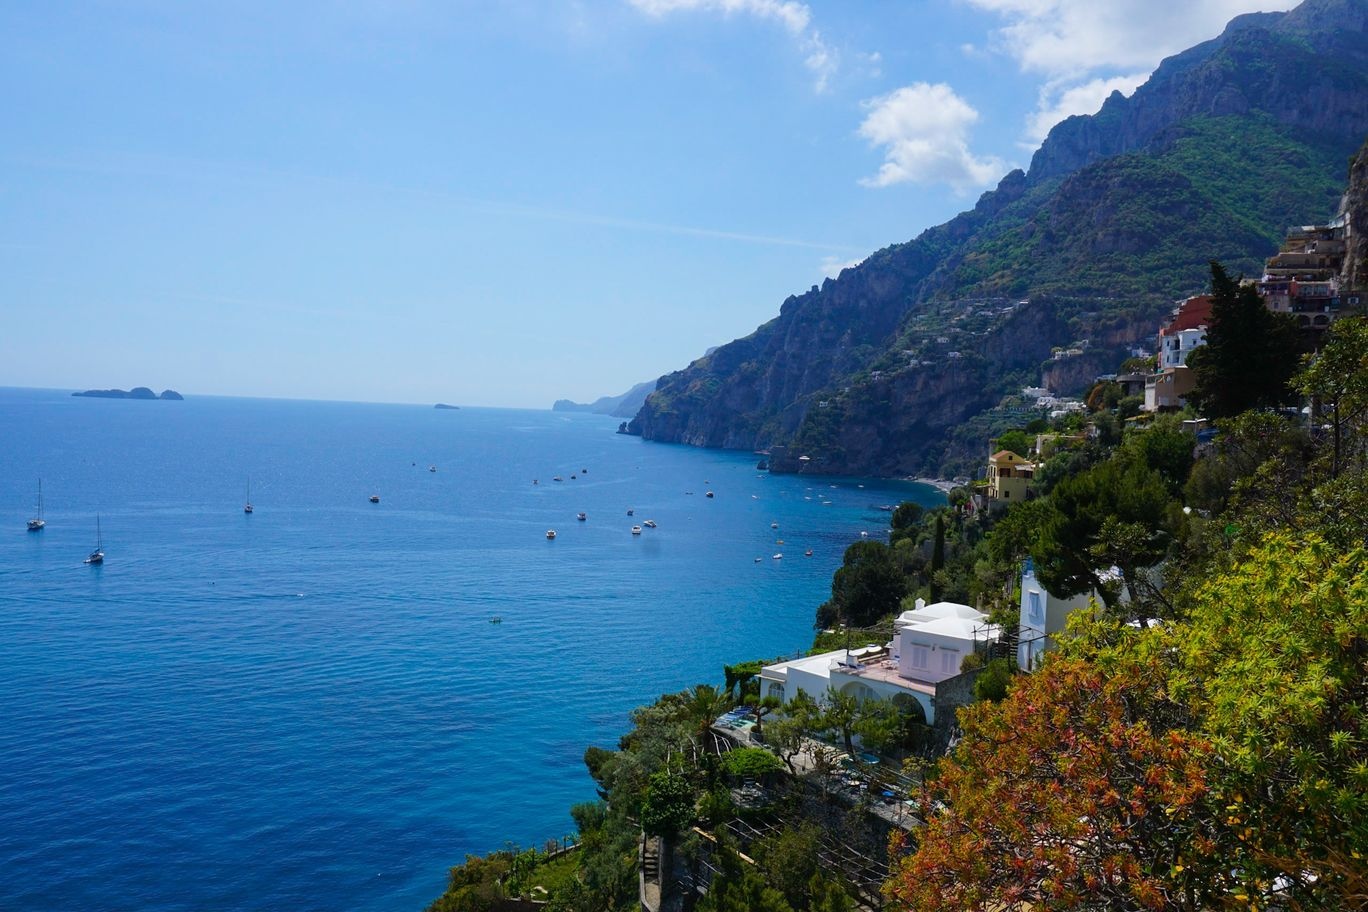 Photo of Amalfi Coast - Italy By Yogesh Dua